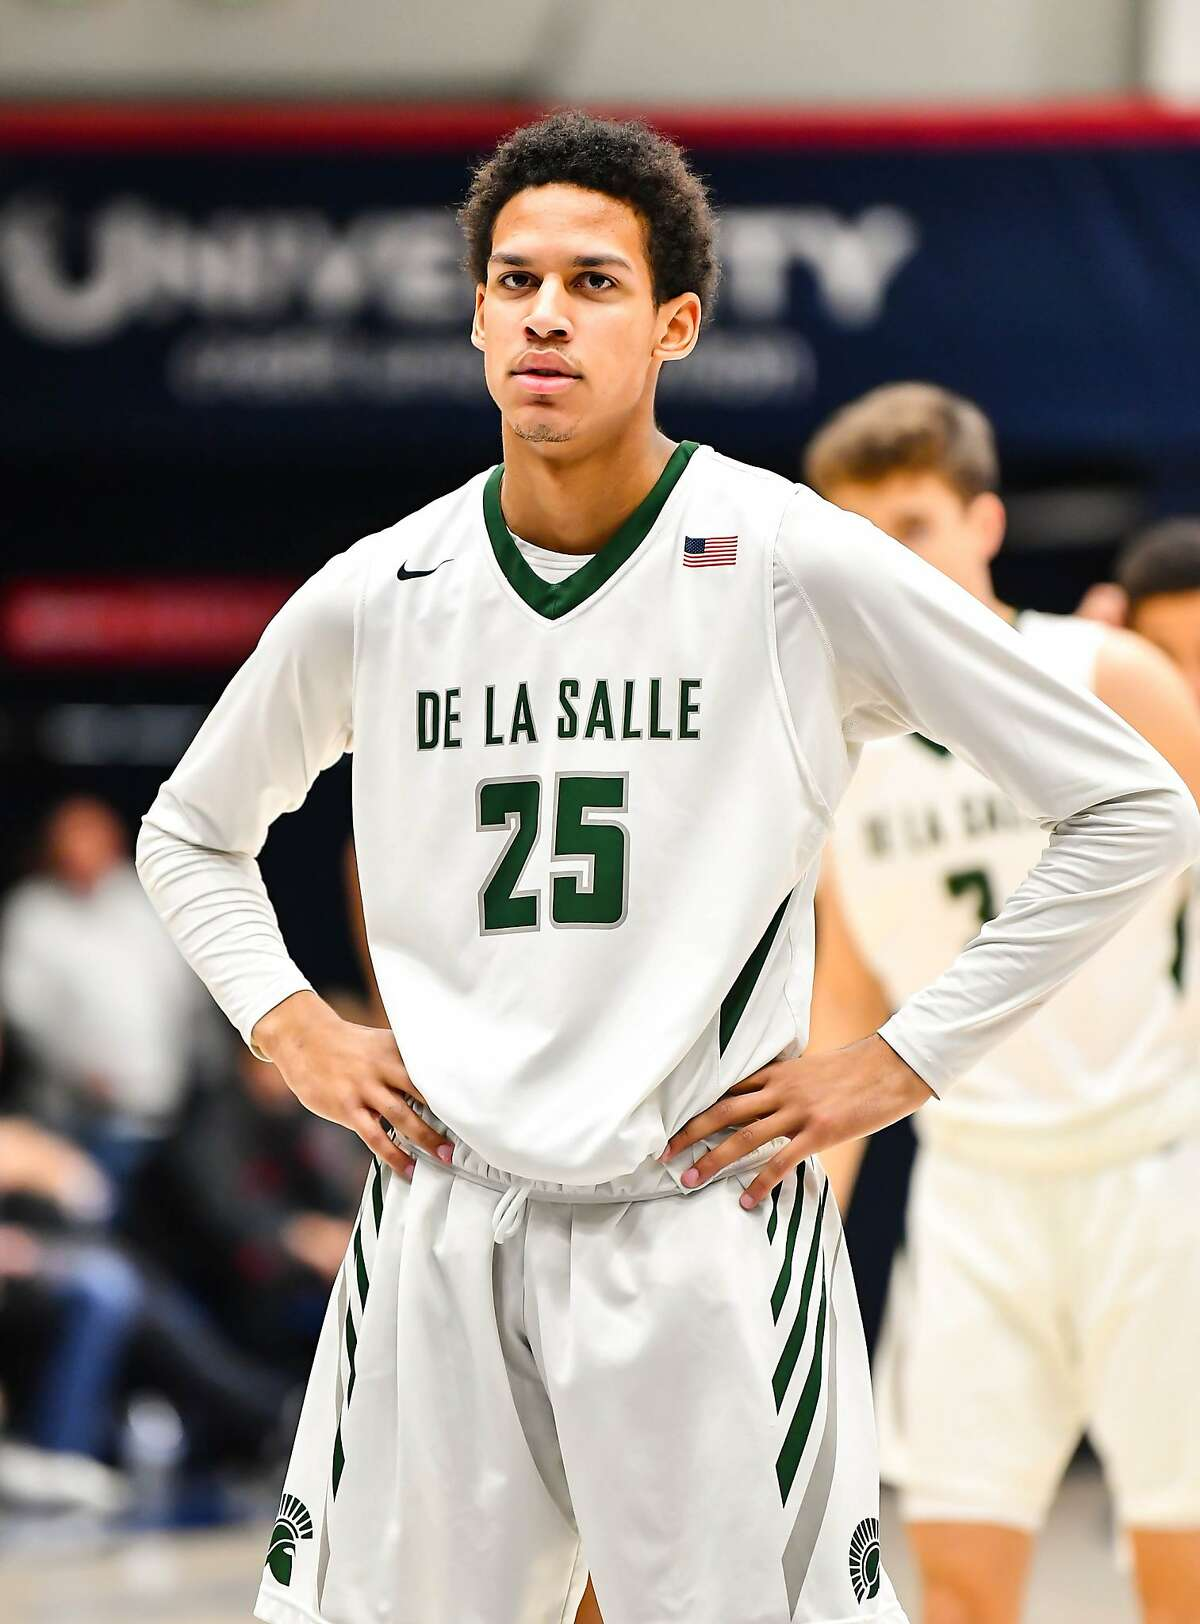 Jeremiah Dargan, one of the state's top players, transferred from De La Salle-Concord to nearby Clayton Valley-Concord.